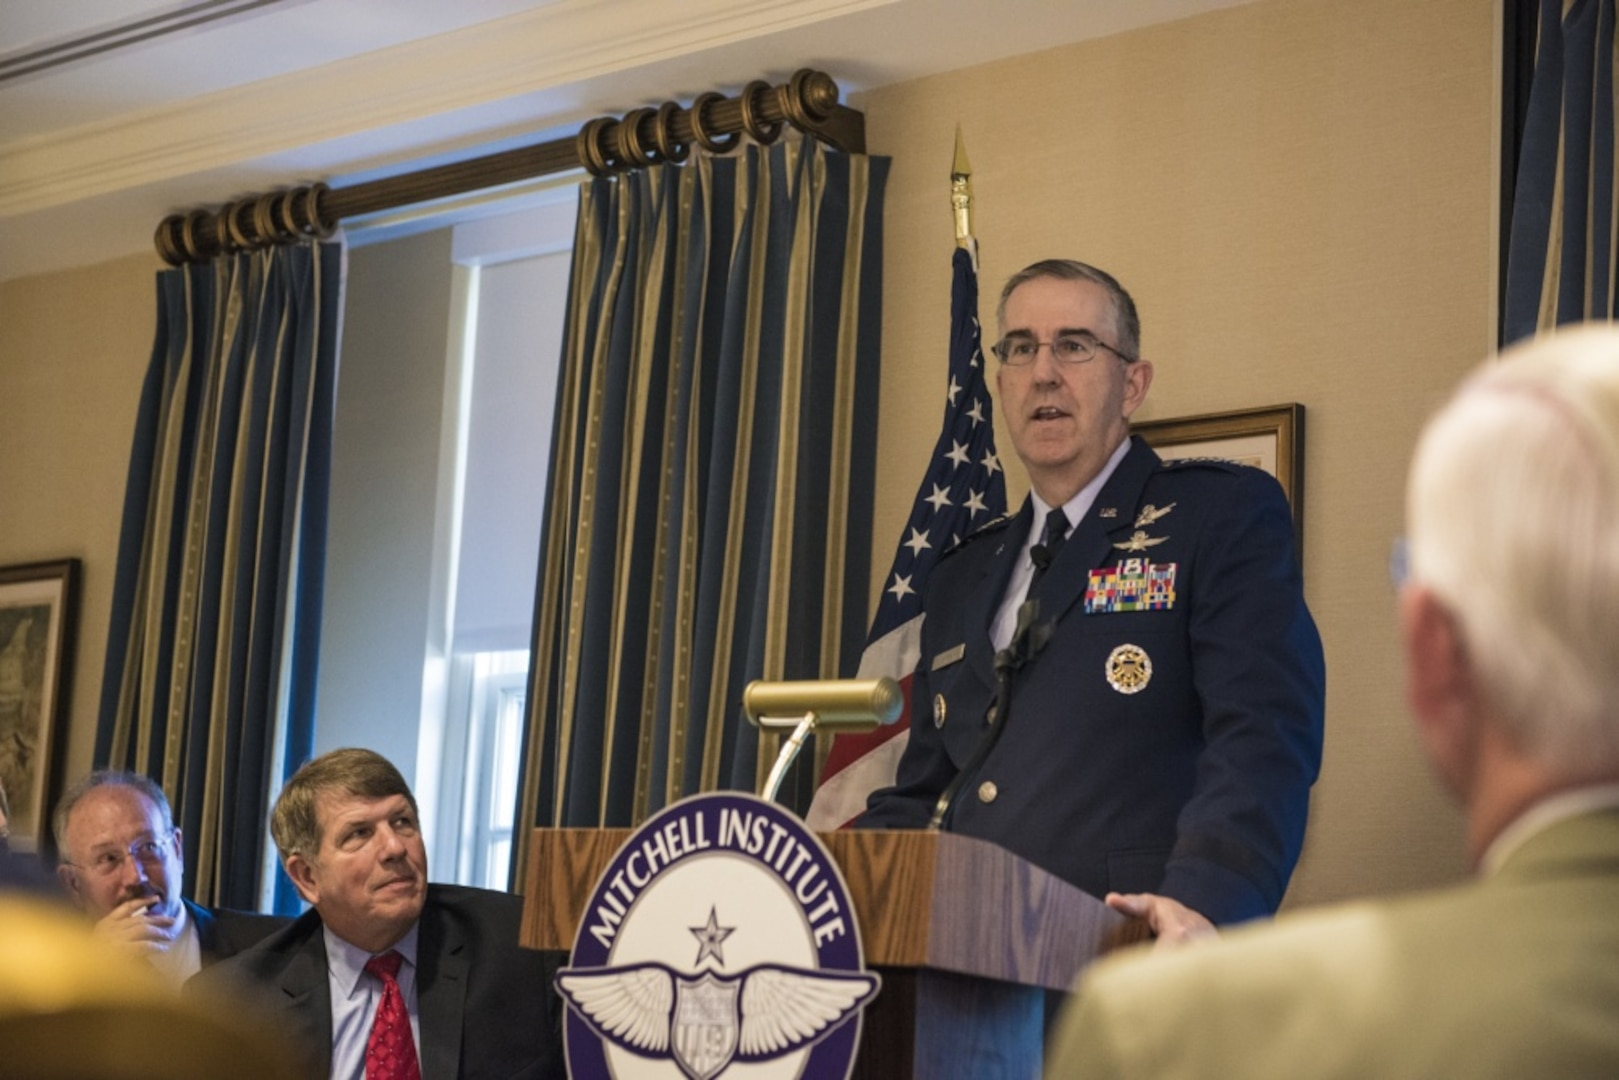 U.S. Air Force Gen. John Hyten, commander of U.S. Strategic Command (USSTRATCOM), delivers a speech at the Mitchell Institute for Aerospace Studies Strategic Deterrence Breakfast Series event at the Capitol Hill Club in Washington, D.C., June 20, 2017. In his remarks, Hyten discussed the need for space, nuclear and missile defense modernization. The Mitchell Institute for Aerospace Studies is an independent, nonpartisan policy research institute that provides creative, insightful policy options to better empower the nation's leaders. One of nine Department of Defense unified combatant commands, USSTRATCOM has global strategic missions assigned through the Unified Command Plan that include strategic deterrence, space operations, cyberspace operations, joint electronic warfare, global strike, missile defense, intelligence, and analysis and targeting.